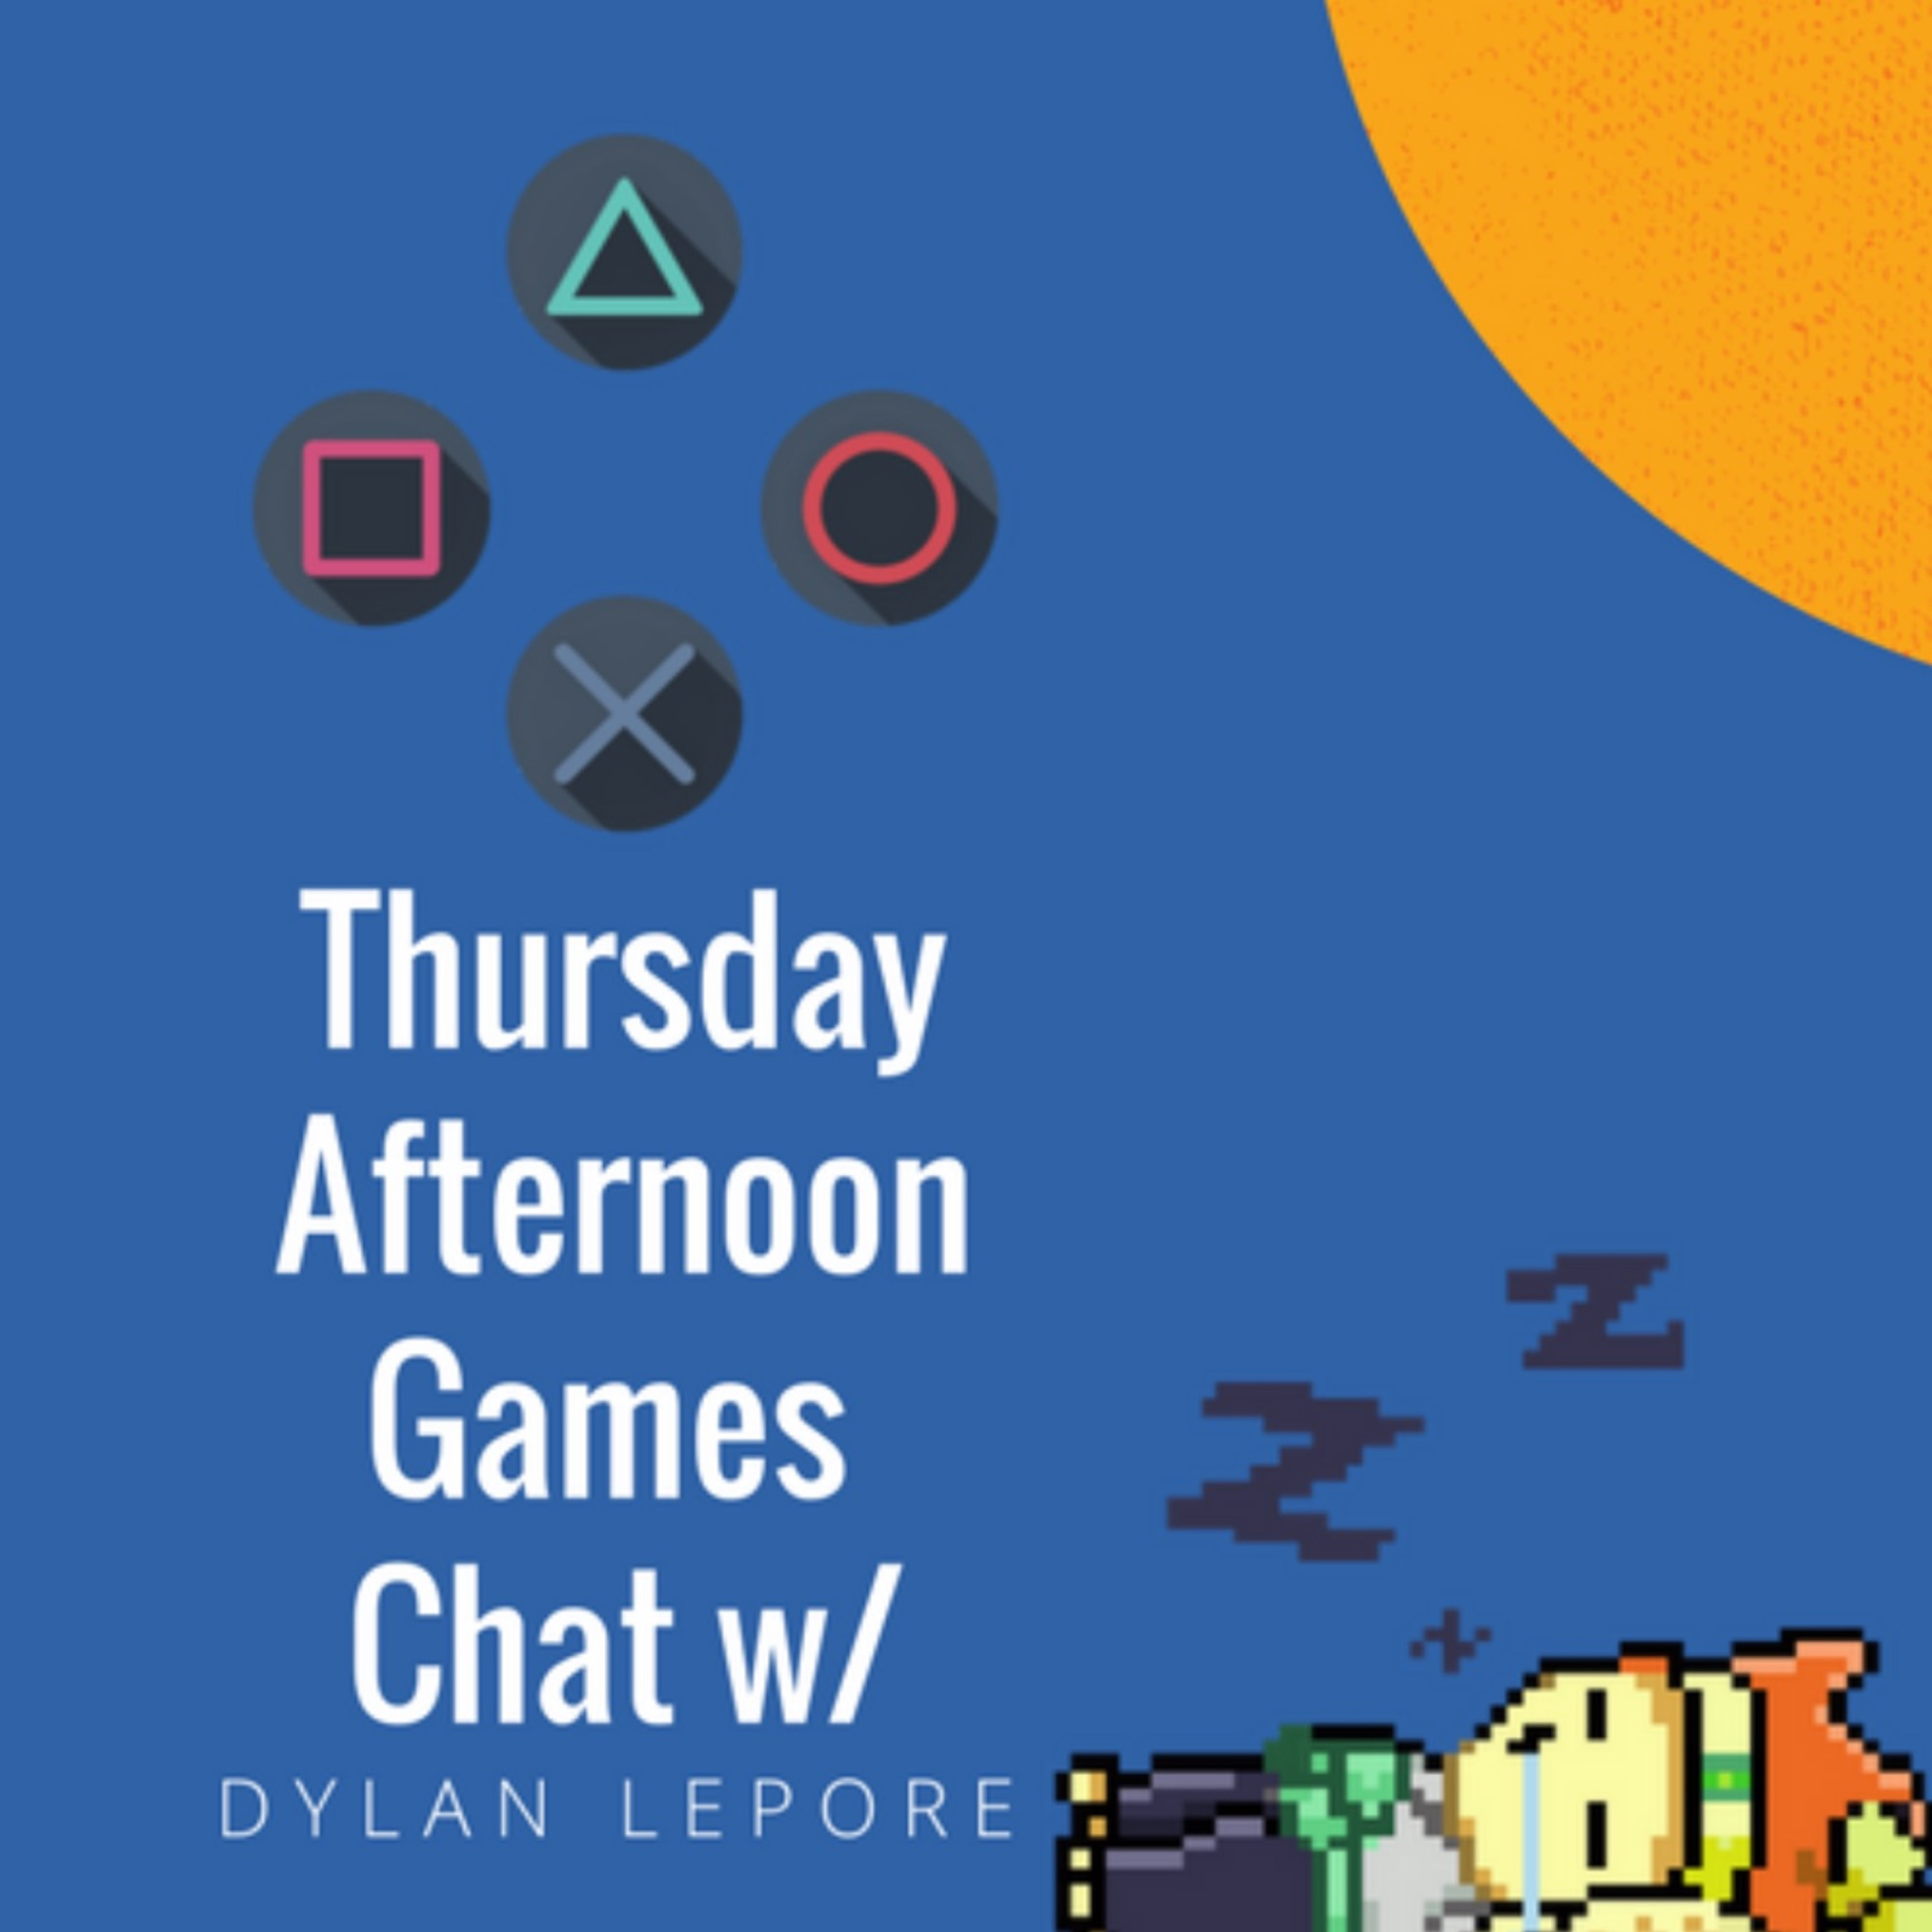 SPYRO REIGNITED TRILOGY | the Thursday Afternoon Games Chat W/ Dylan Lepore Ep. 4